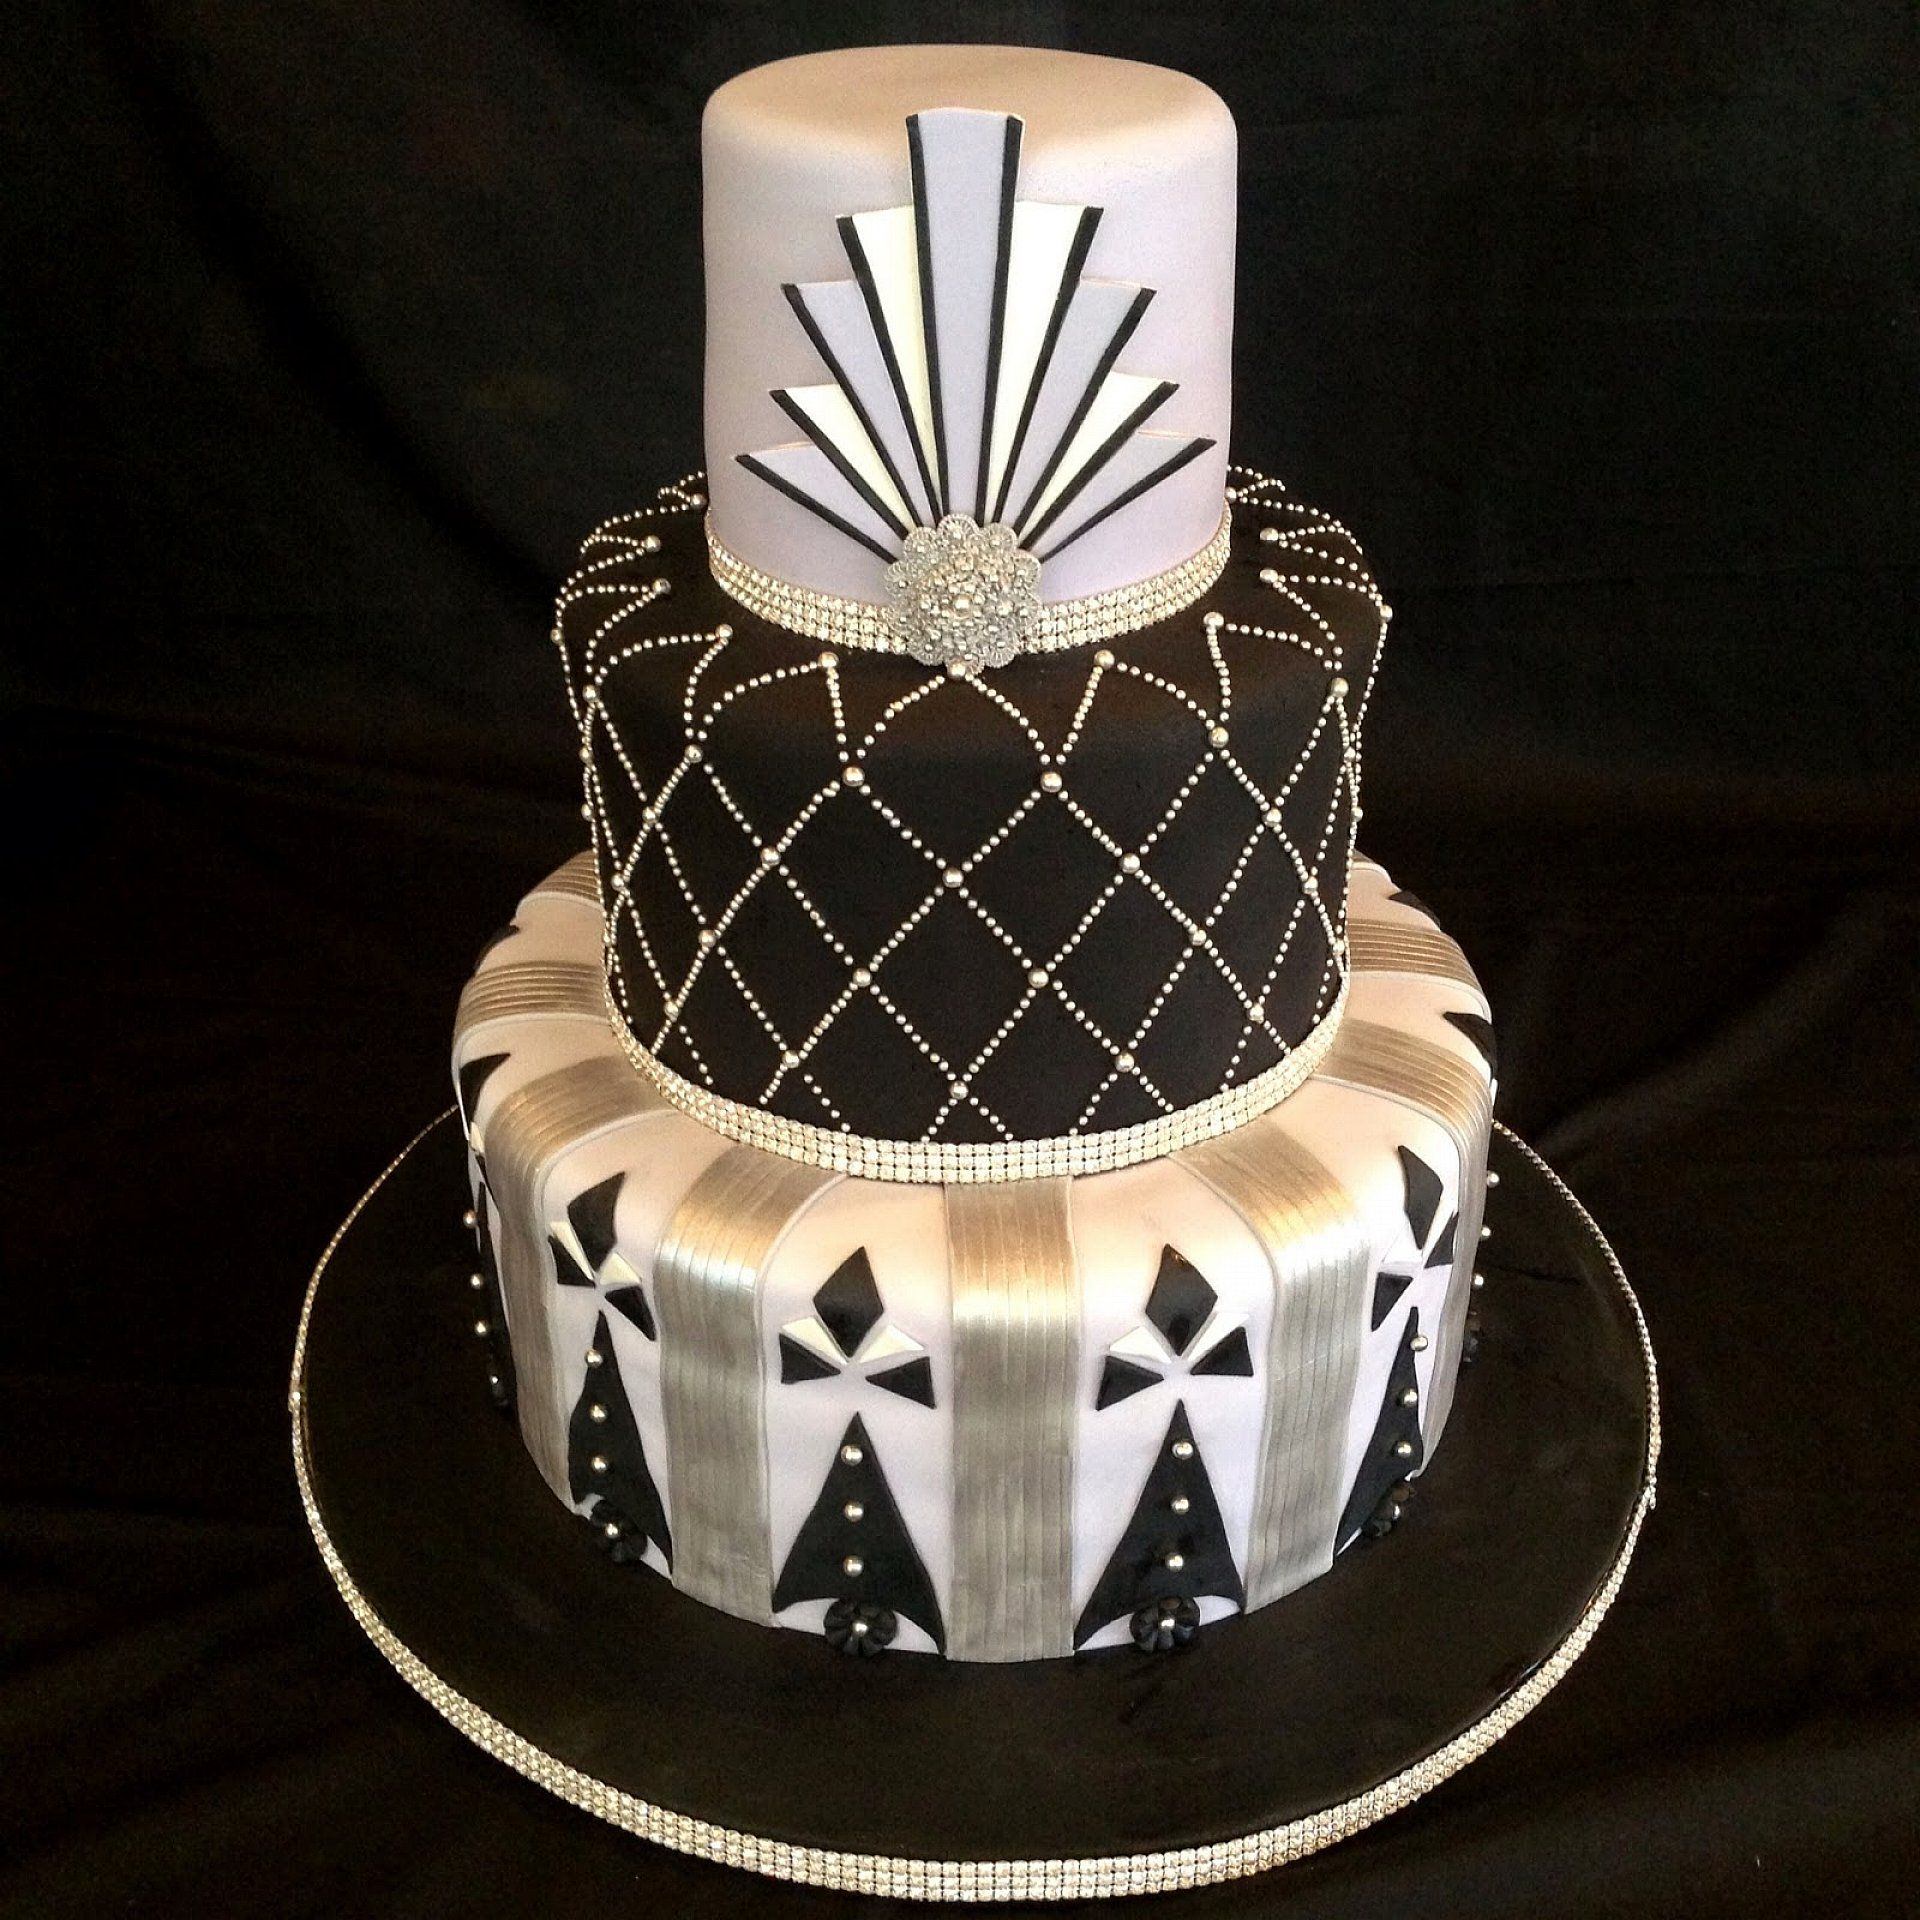 Roaring 20s Cakes Photo Gallery Of The Art Deco Weddings Cakes